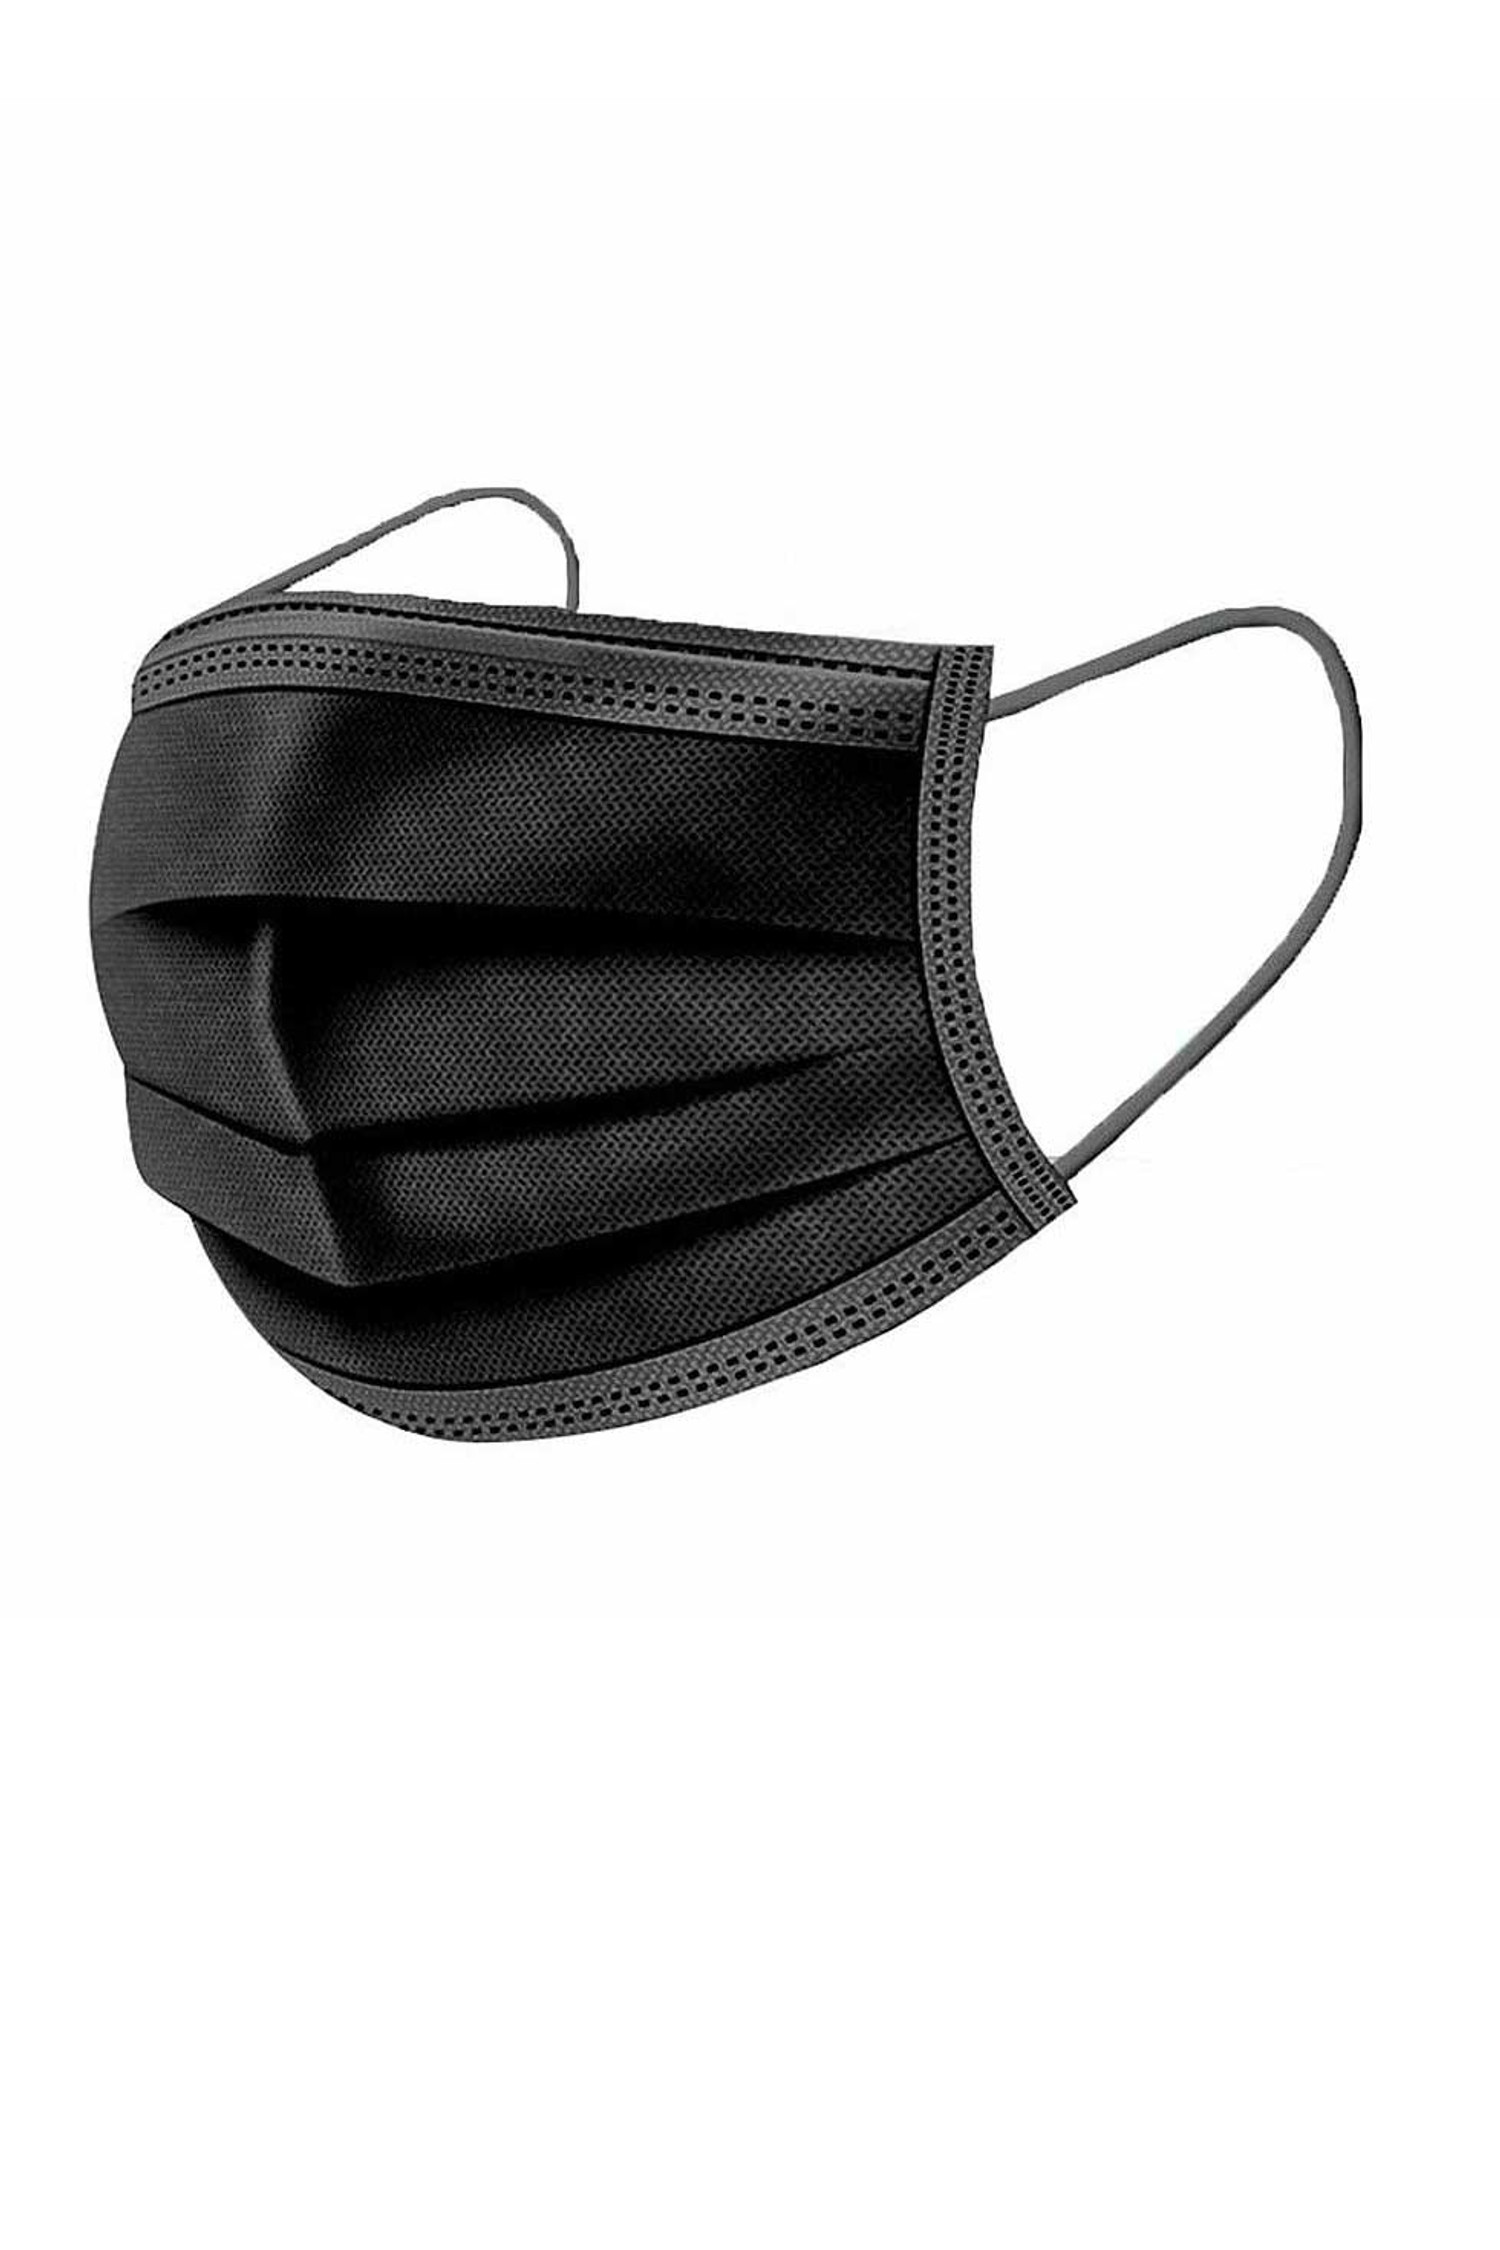 Black 4 Ply Disposable Face Masks - 10 Pack